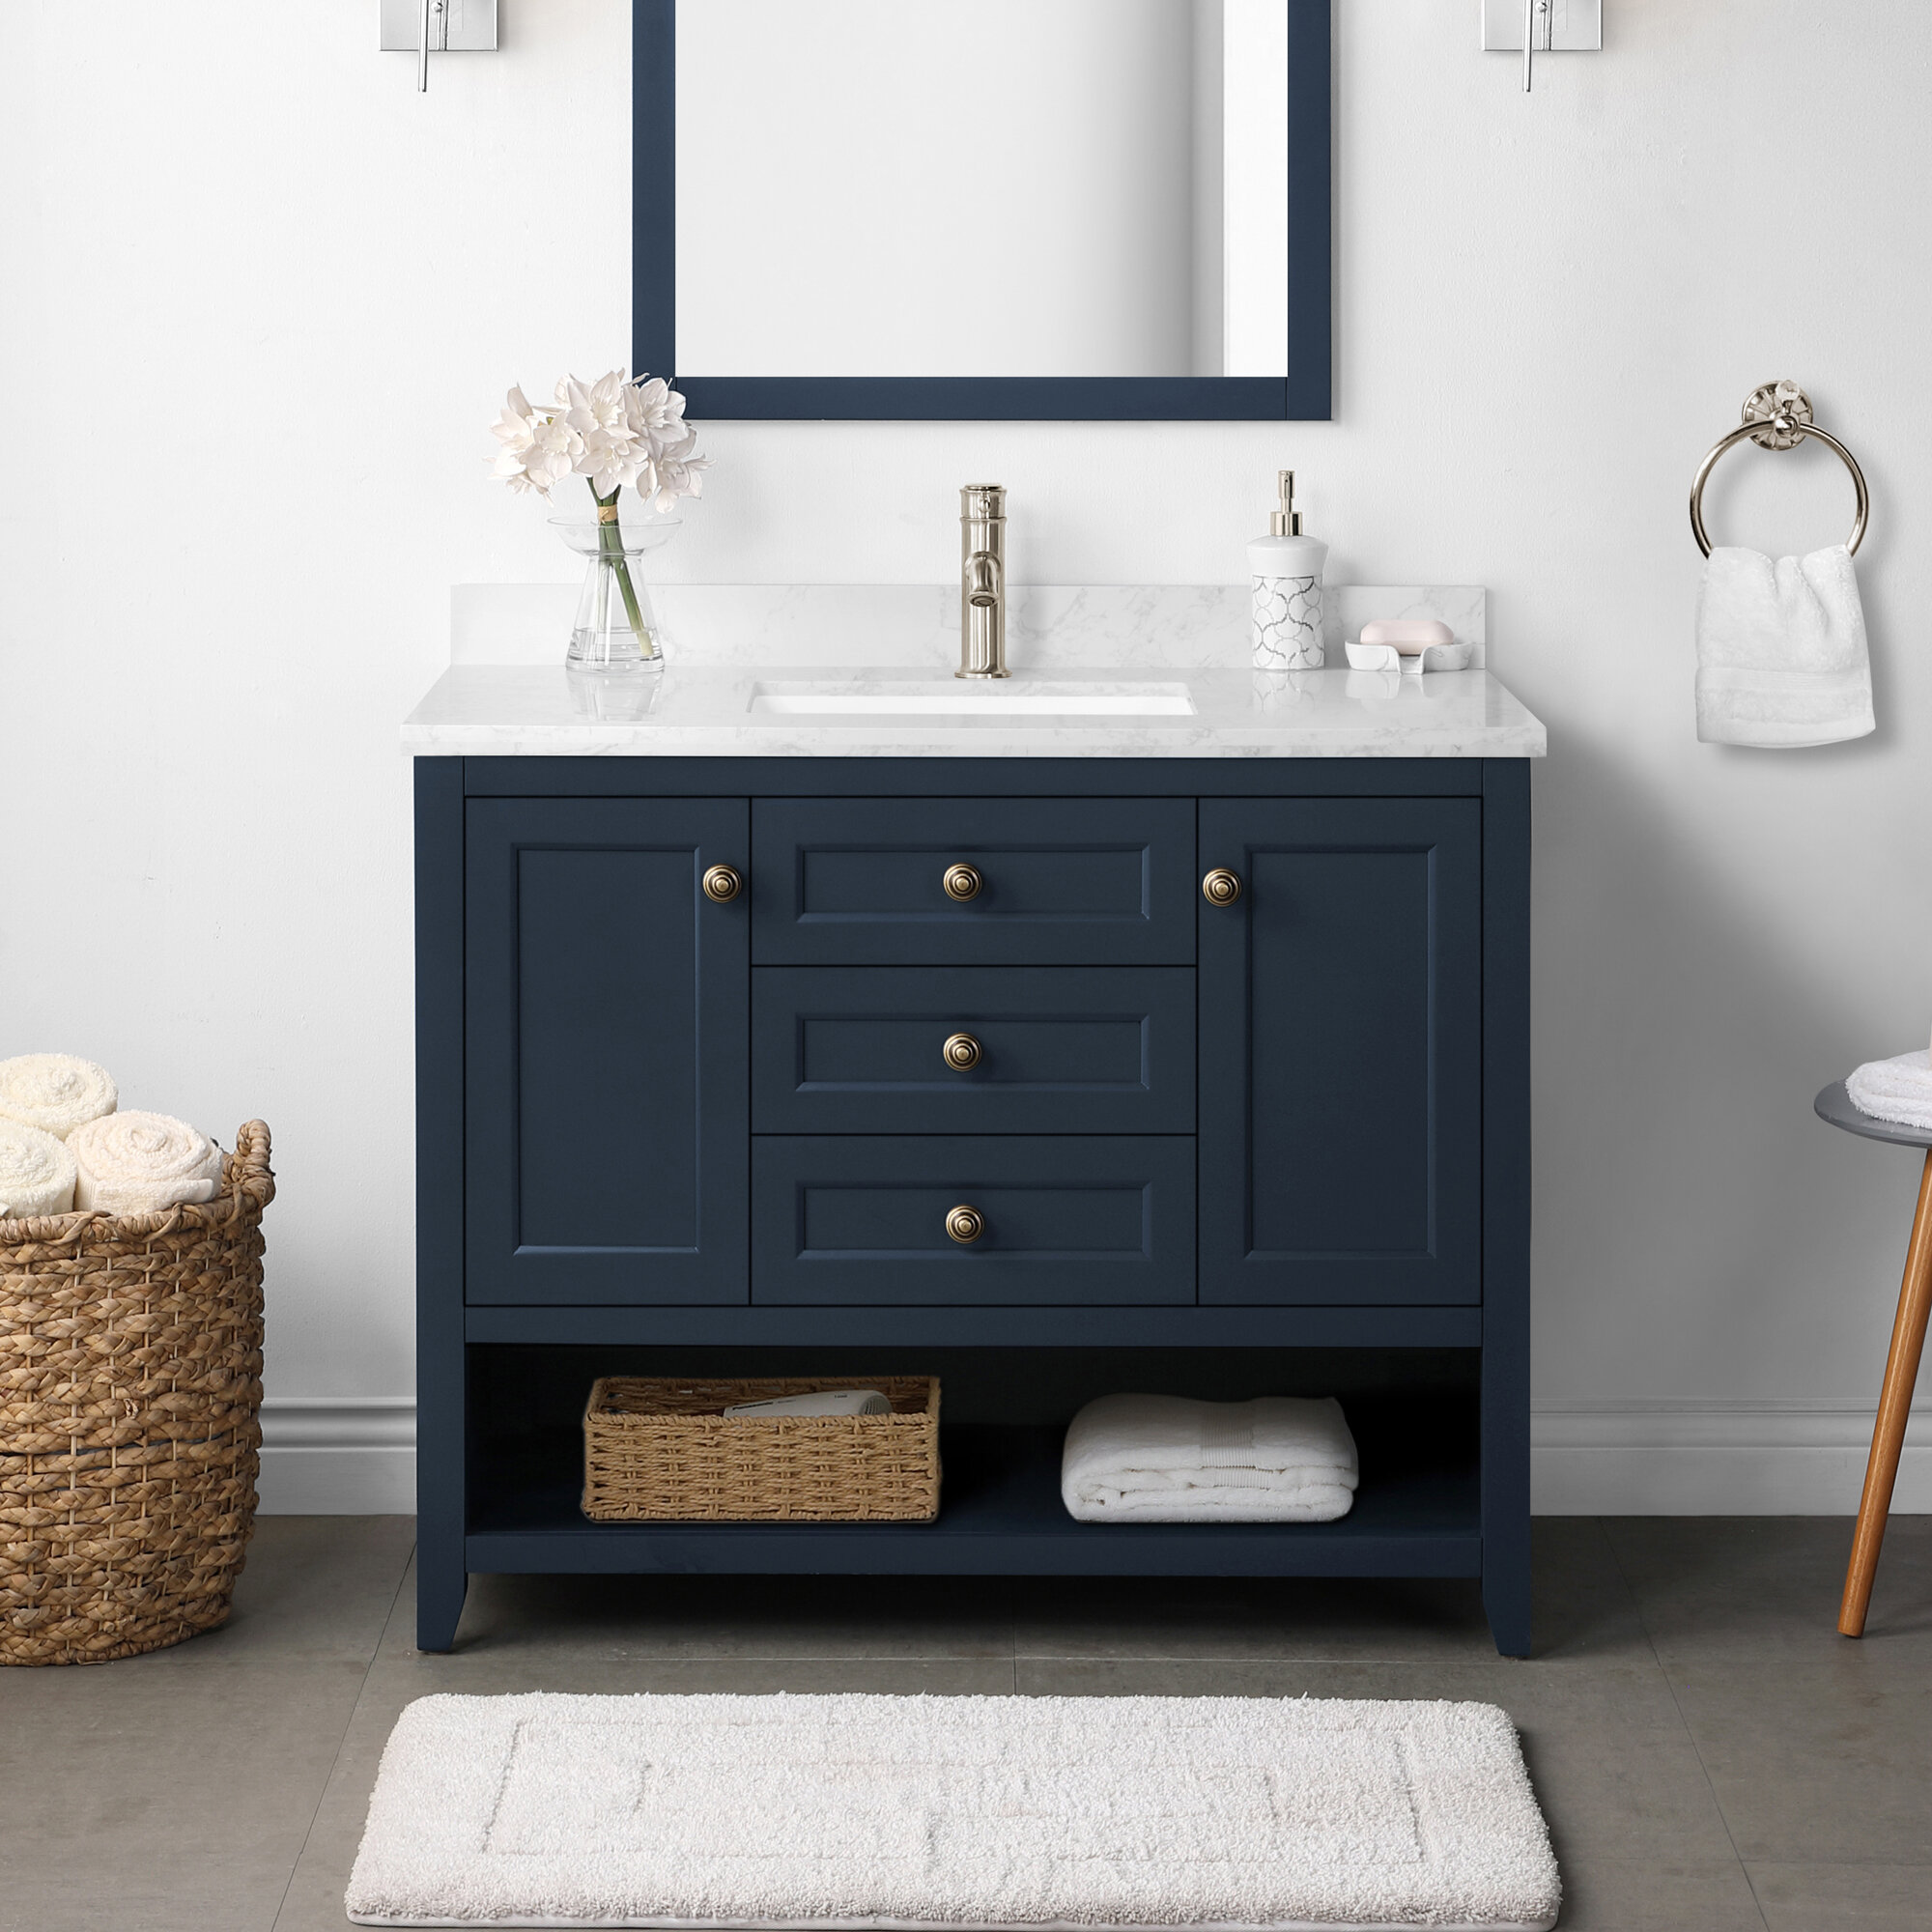 Martha Stewart Granary 42 In Vanity From Lily Pond Collection In Midnight Blue Finish Wayfair Ca